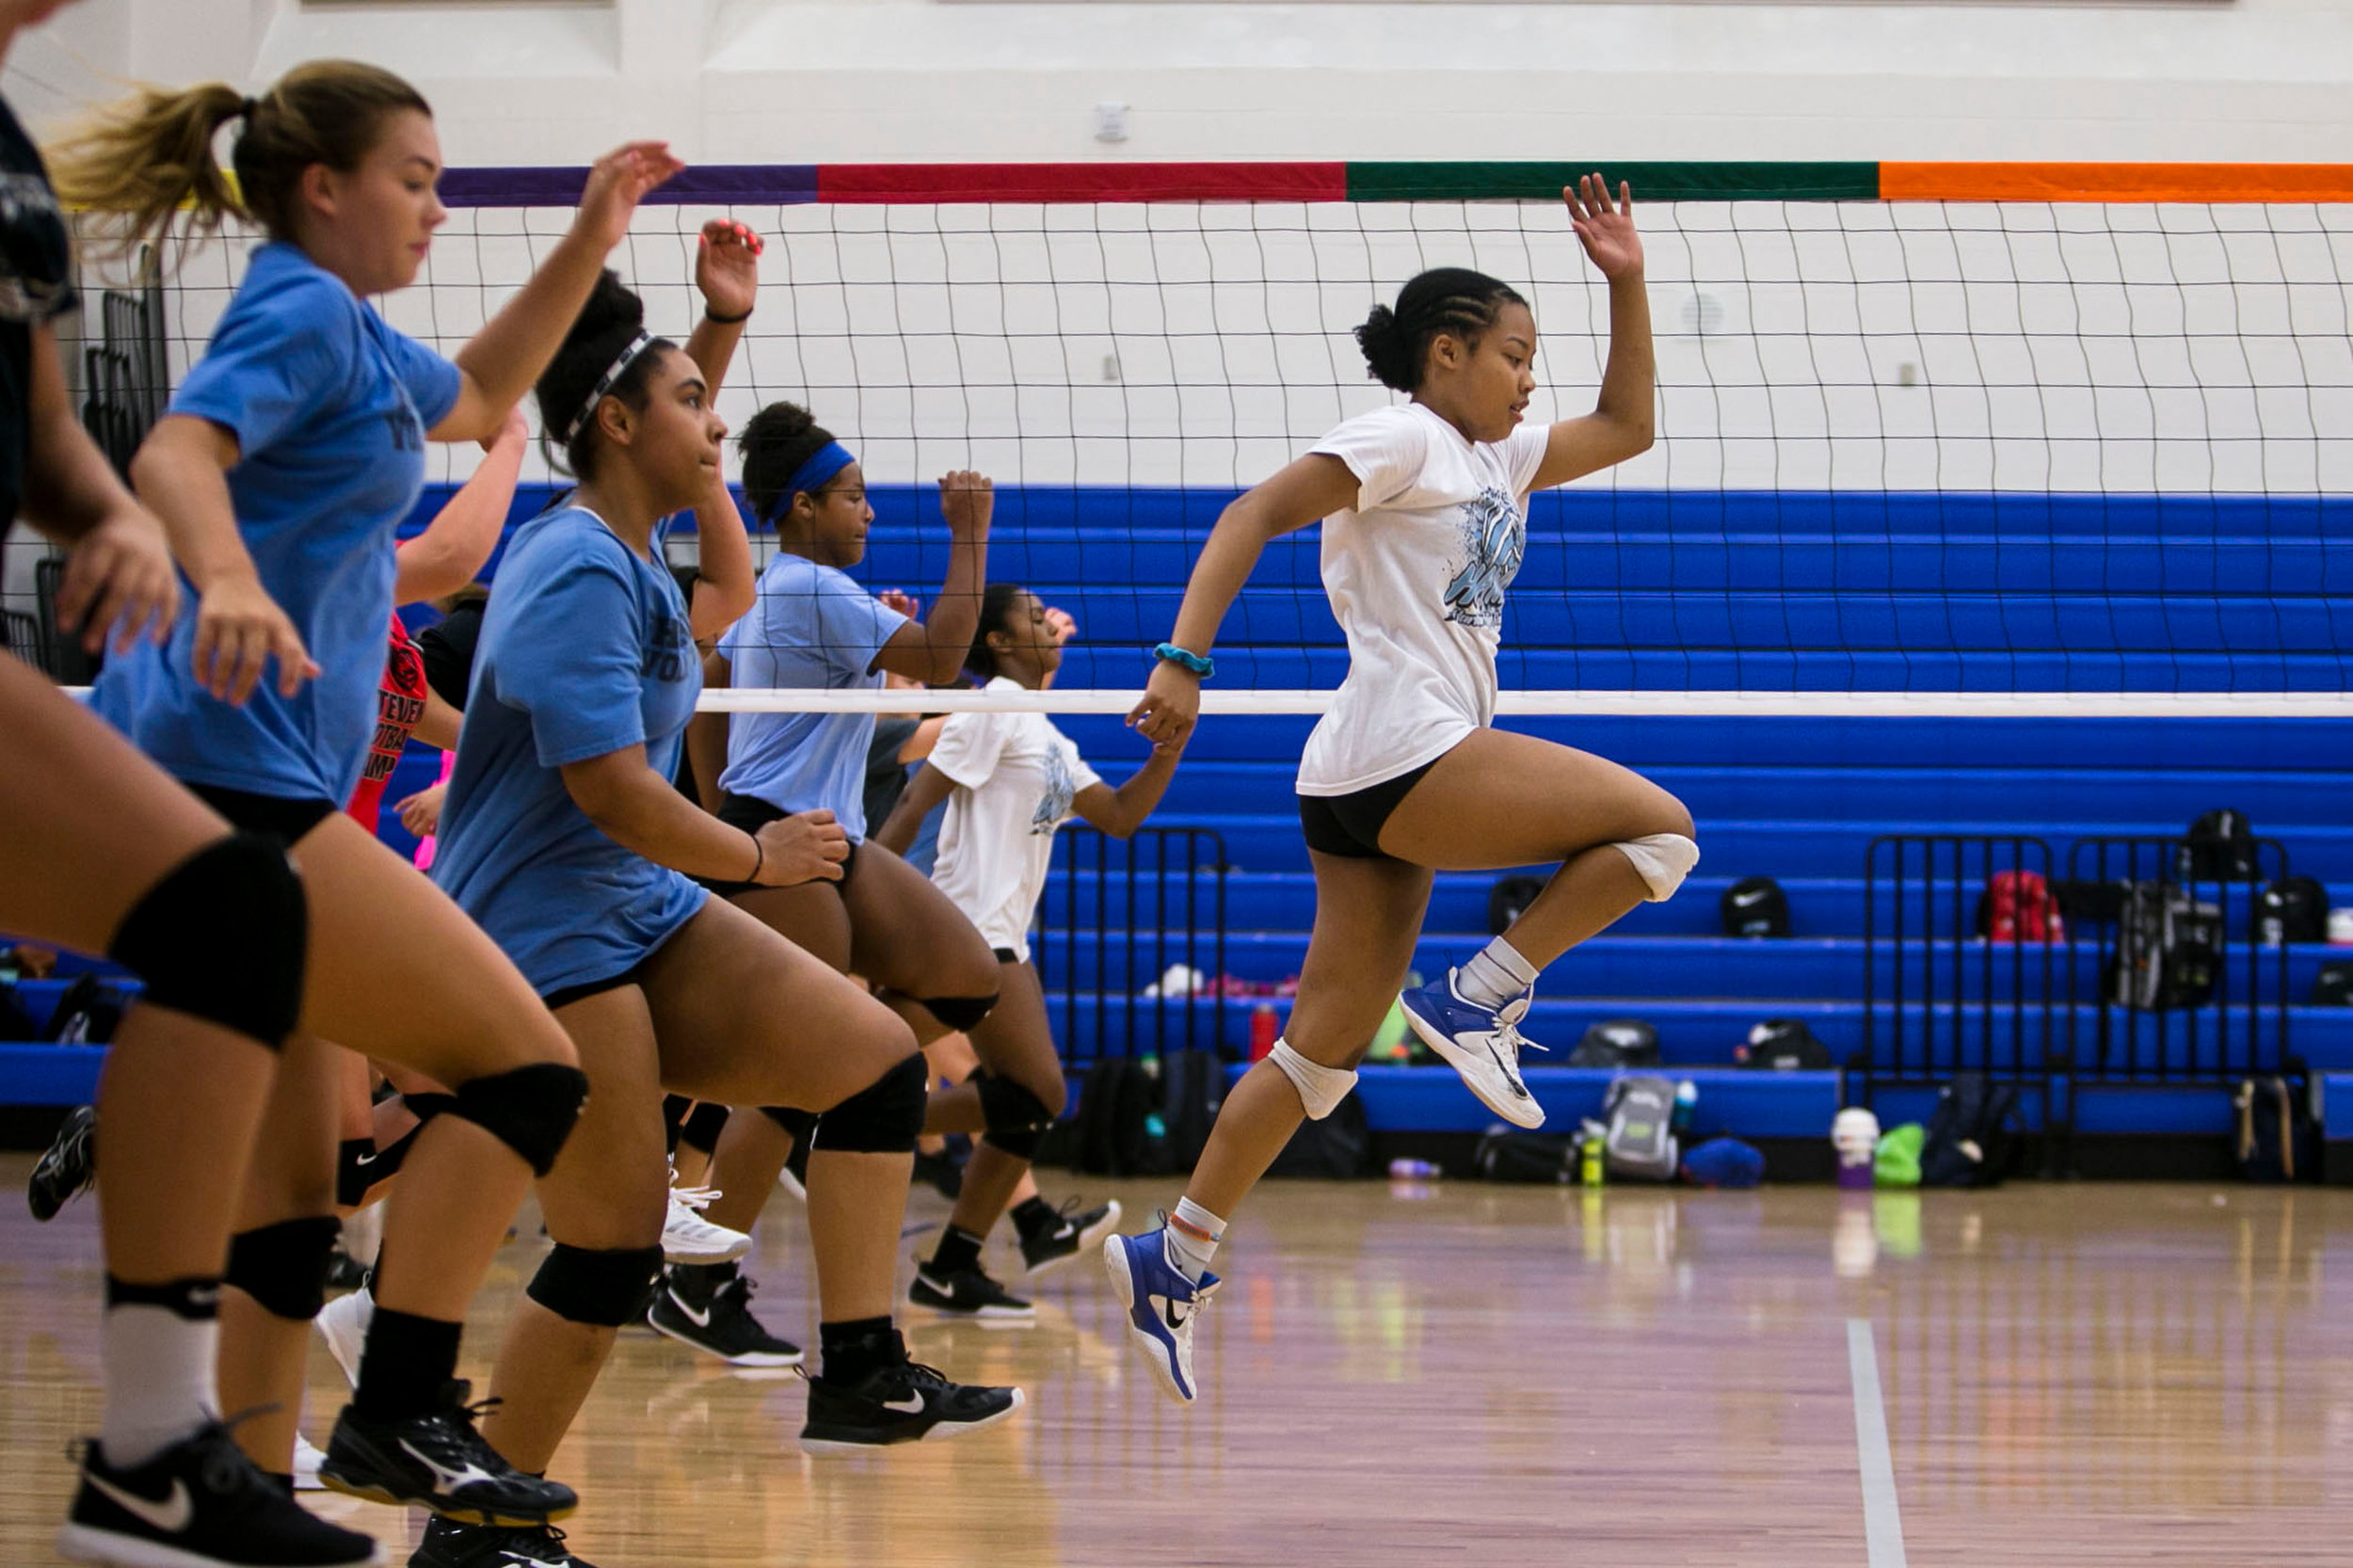 During varsity volleyball tryouts, Jevani Hanspard, 16, takes the lead leads the pack of volleyball hopefuls during a conditioning drill Harlan High School.